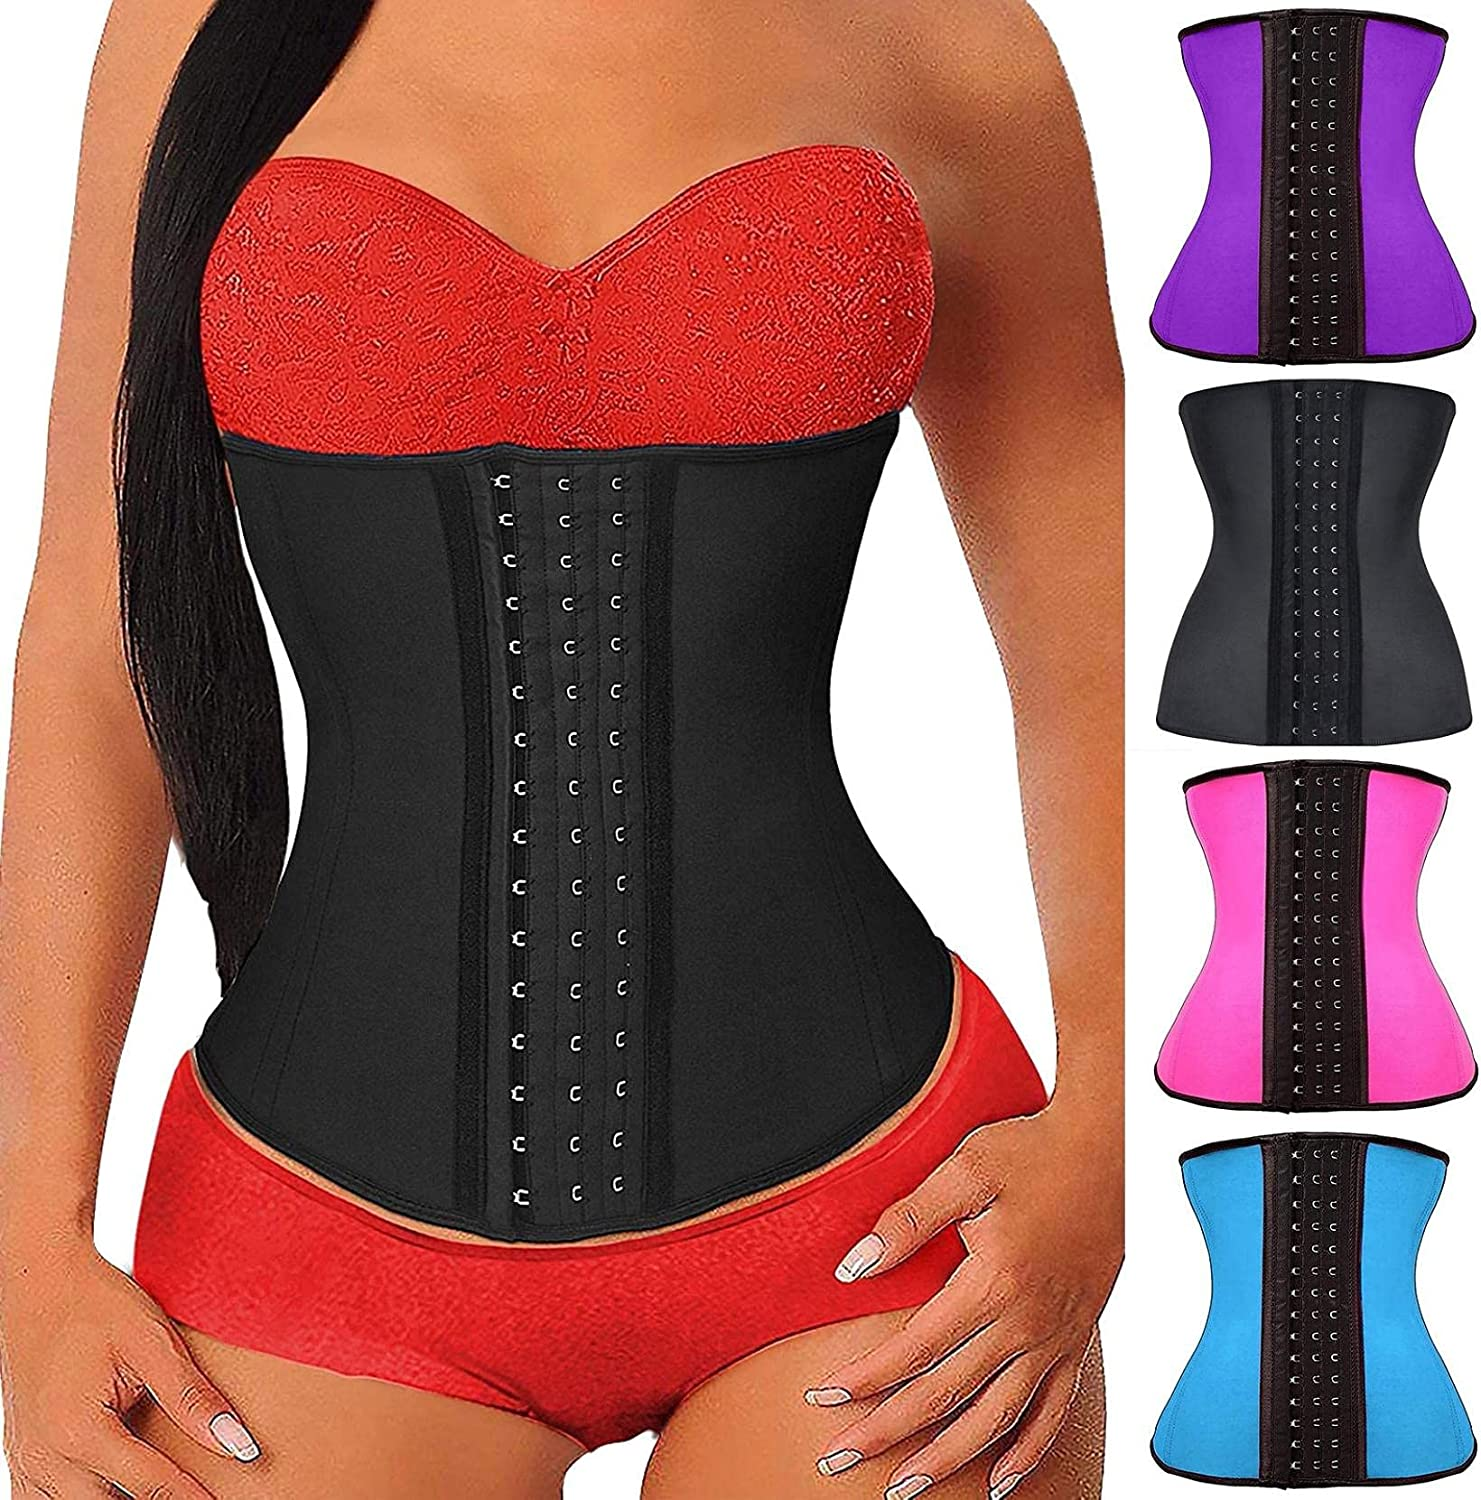 Slim Shapewear for Women Tummy Control Body NEW before selling ☆ Discount mail order Colombianas Fajas Sh